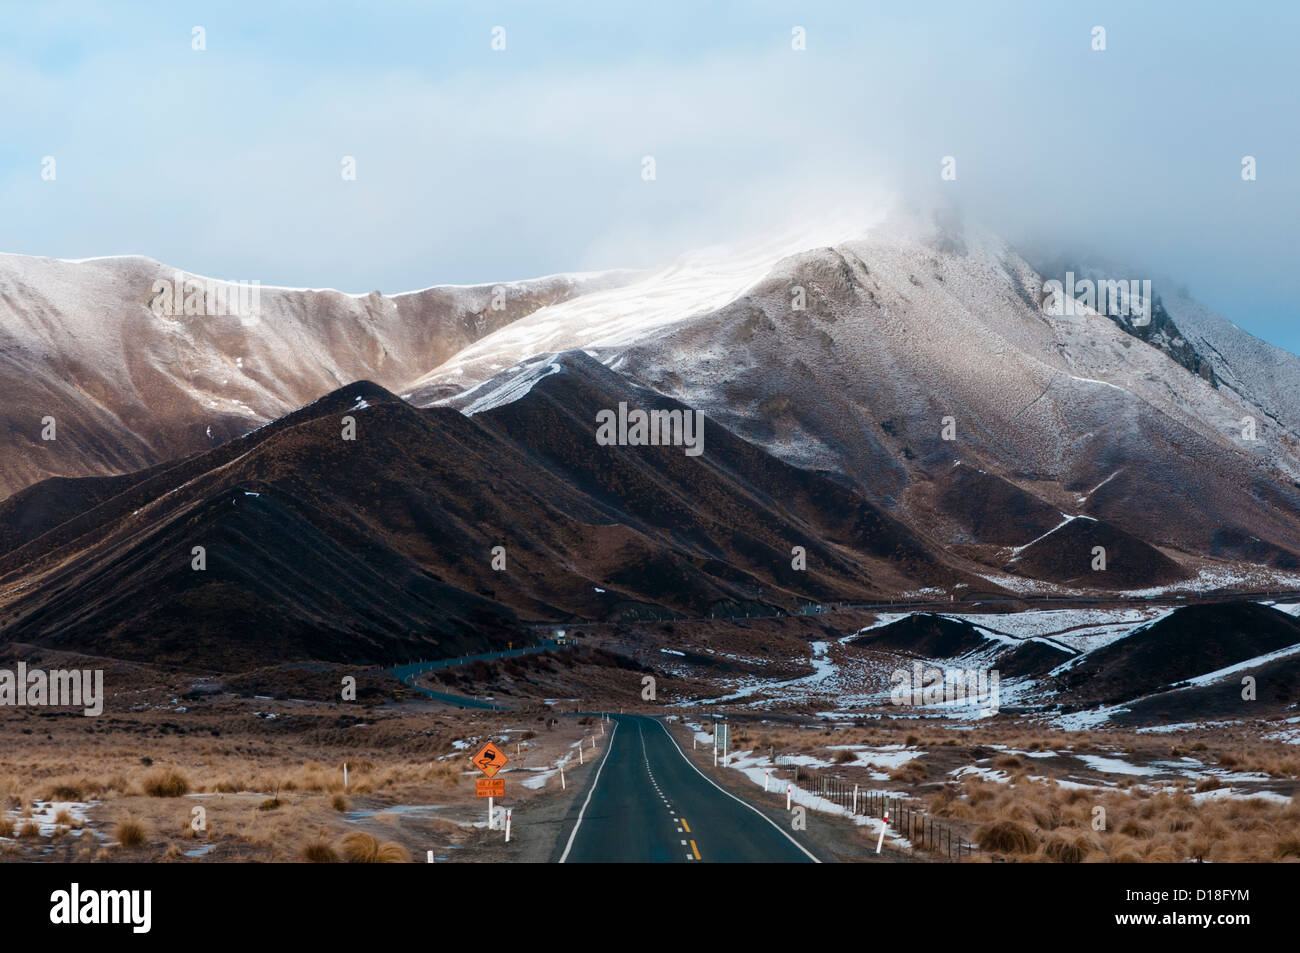 Paved mountain pass in rural landscape - Stock Image